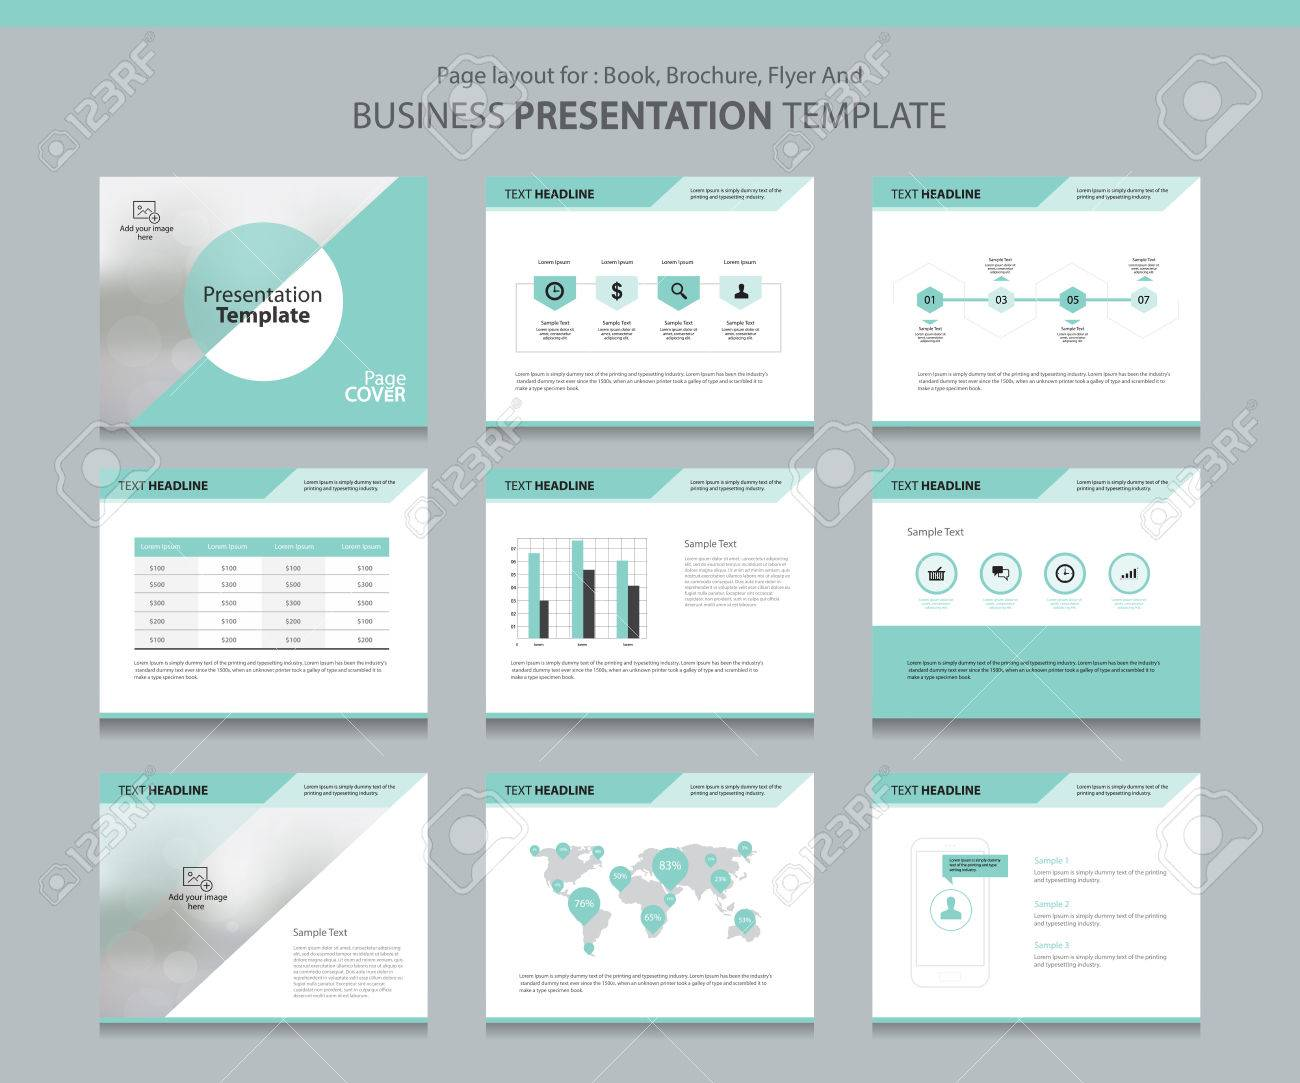 Page layout design template for business presentation page with page cover background design and infographic elements design - 68434863